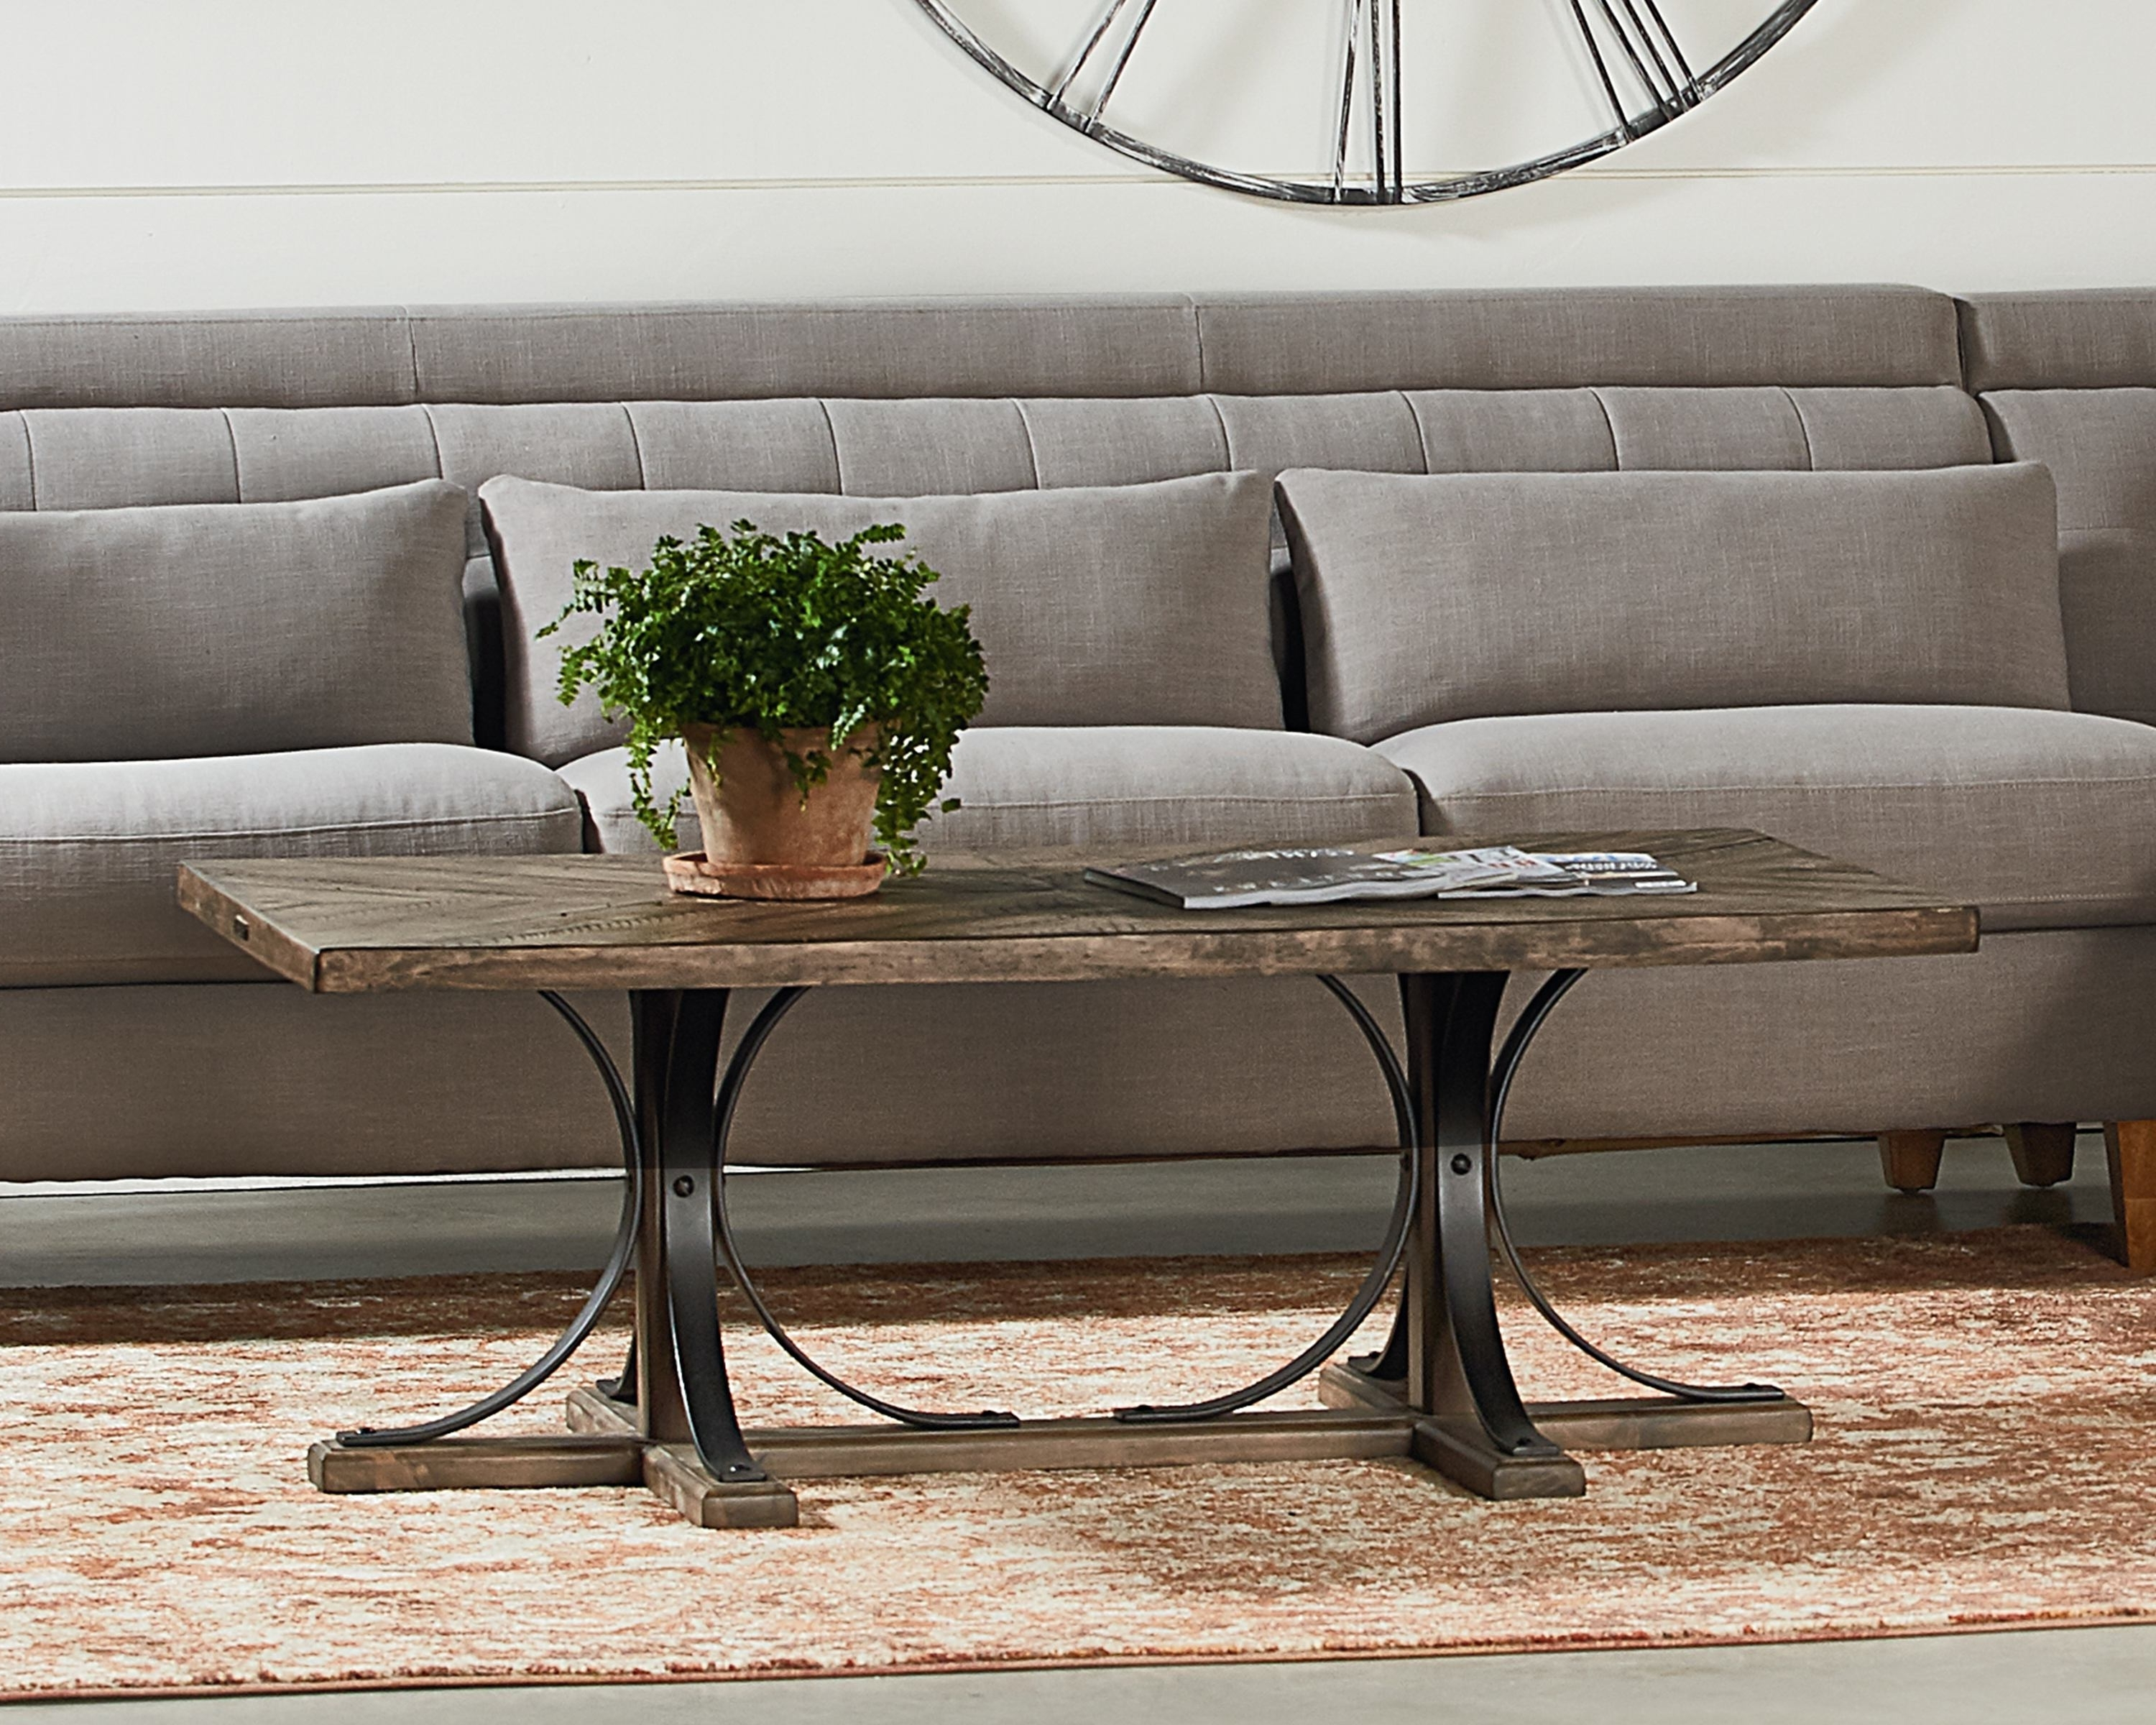 Magnolia Home Shop Floor Dining Tables With Iron Trestle In Popular Iron Trestle Coffee Table – Magnolia Home (View 7 of 25)